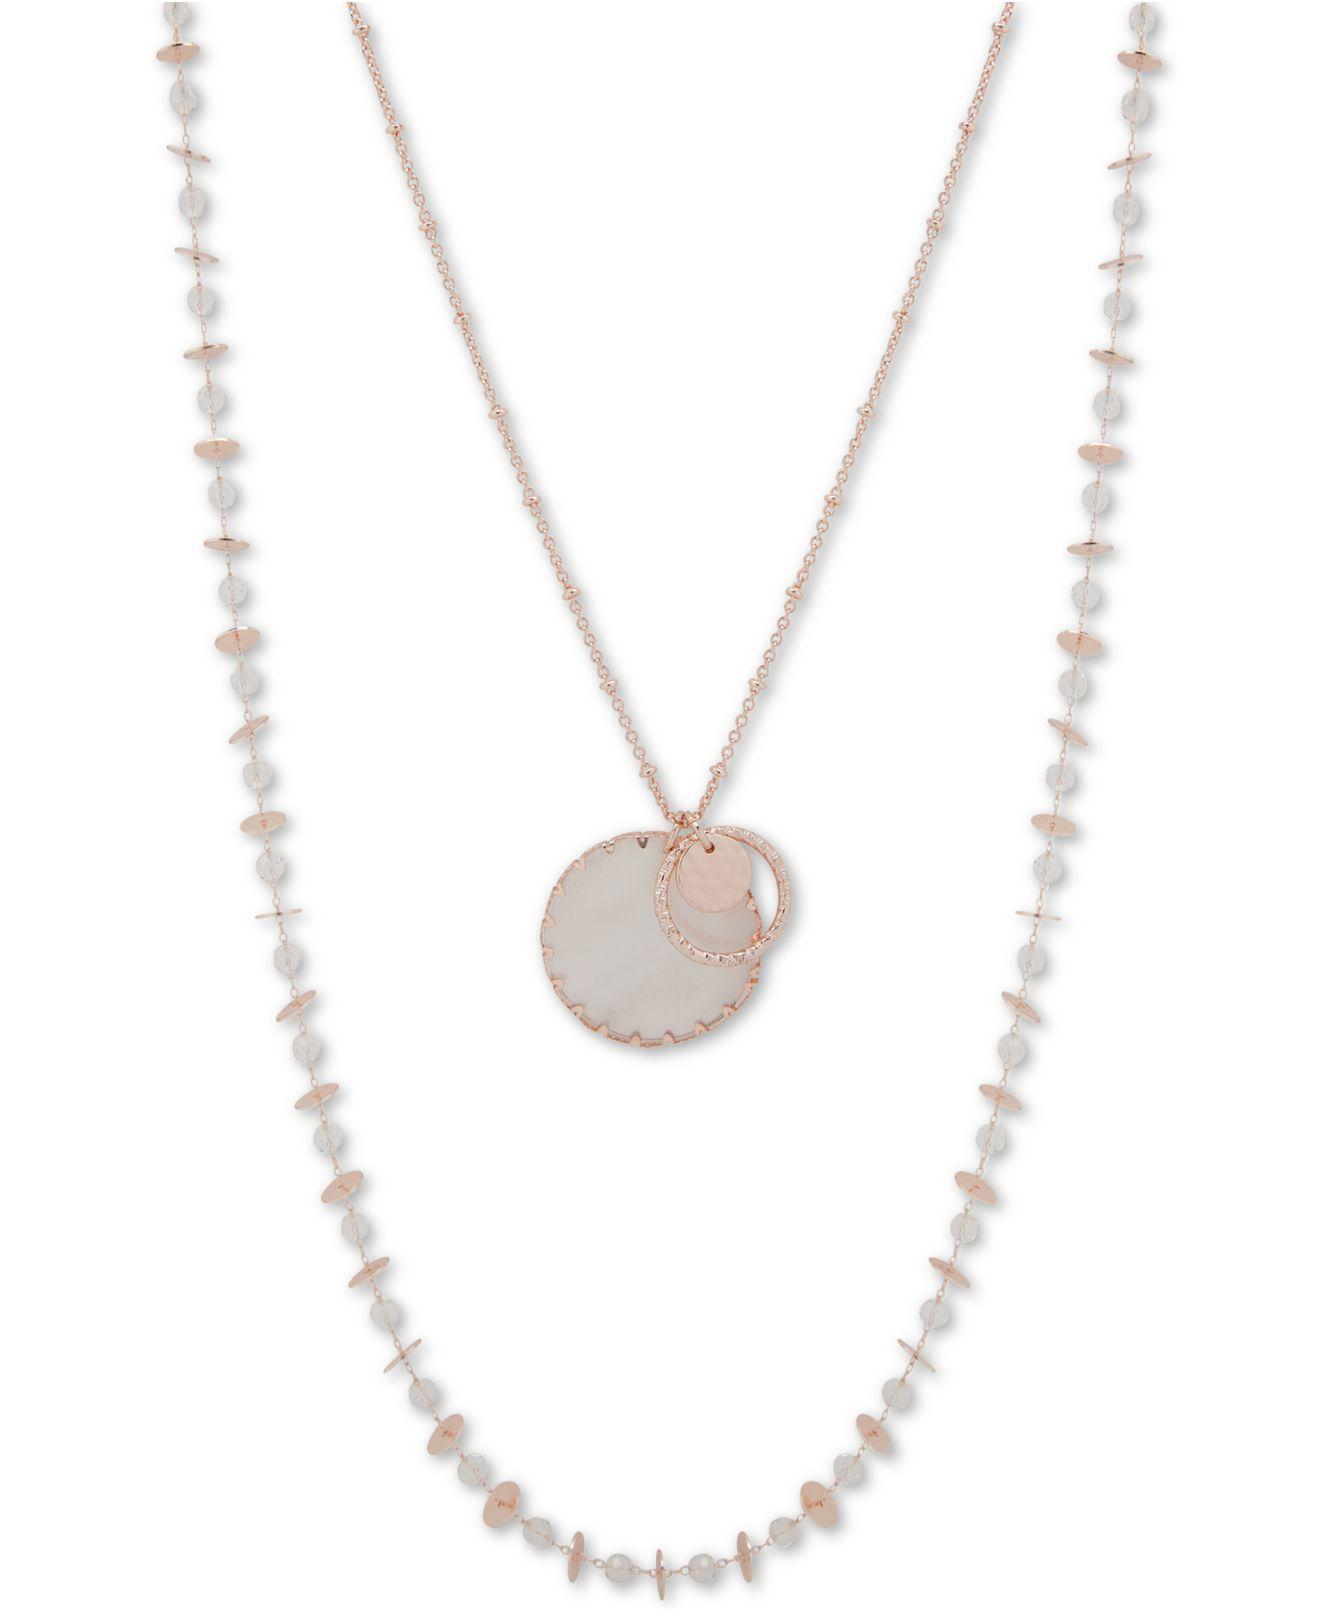 4f19be0634619 Lonna & Lilly Gold-tone Beaded Two-row Pendant Necklace, 36